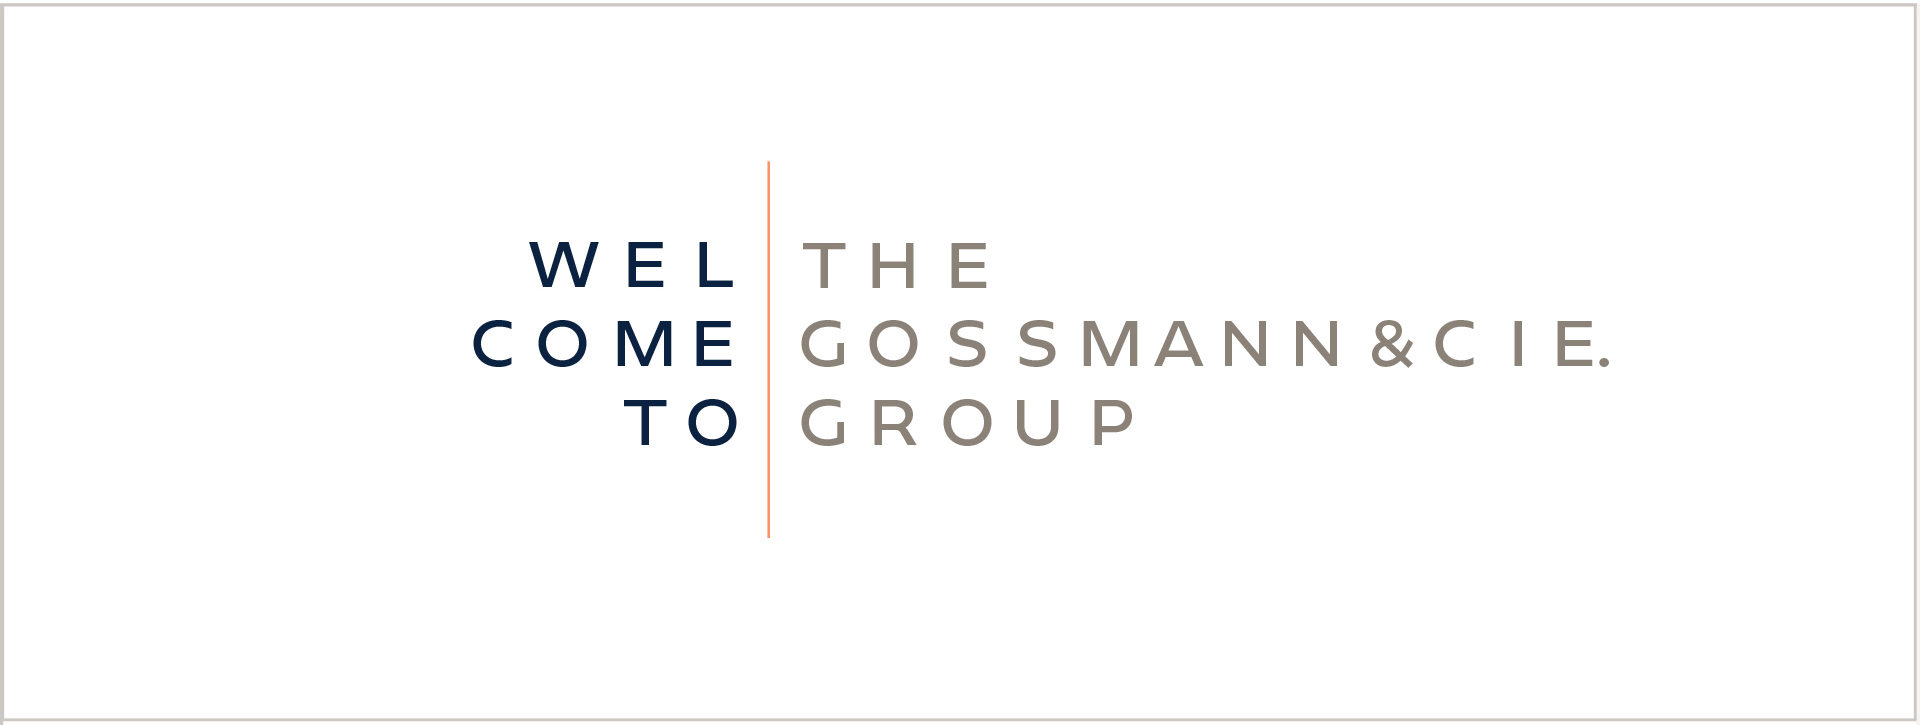 Gossmann&CEI Welcome